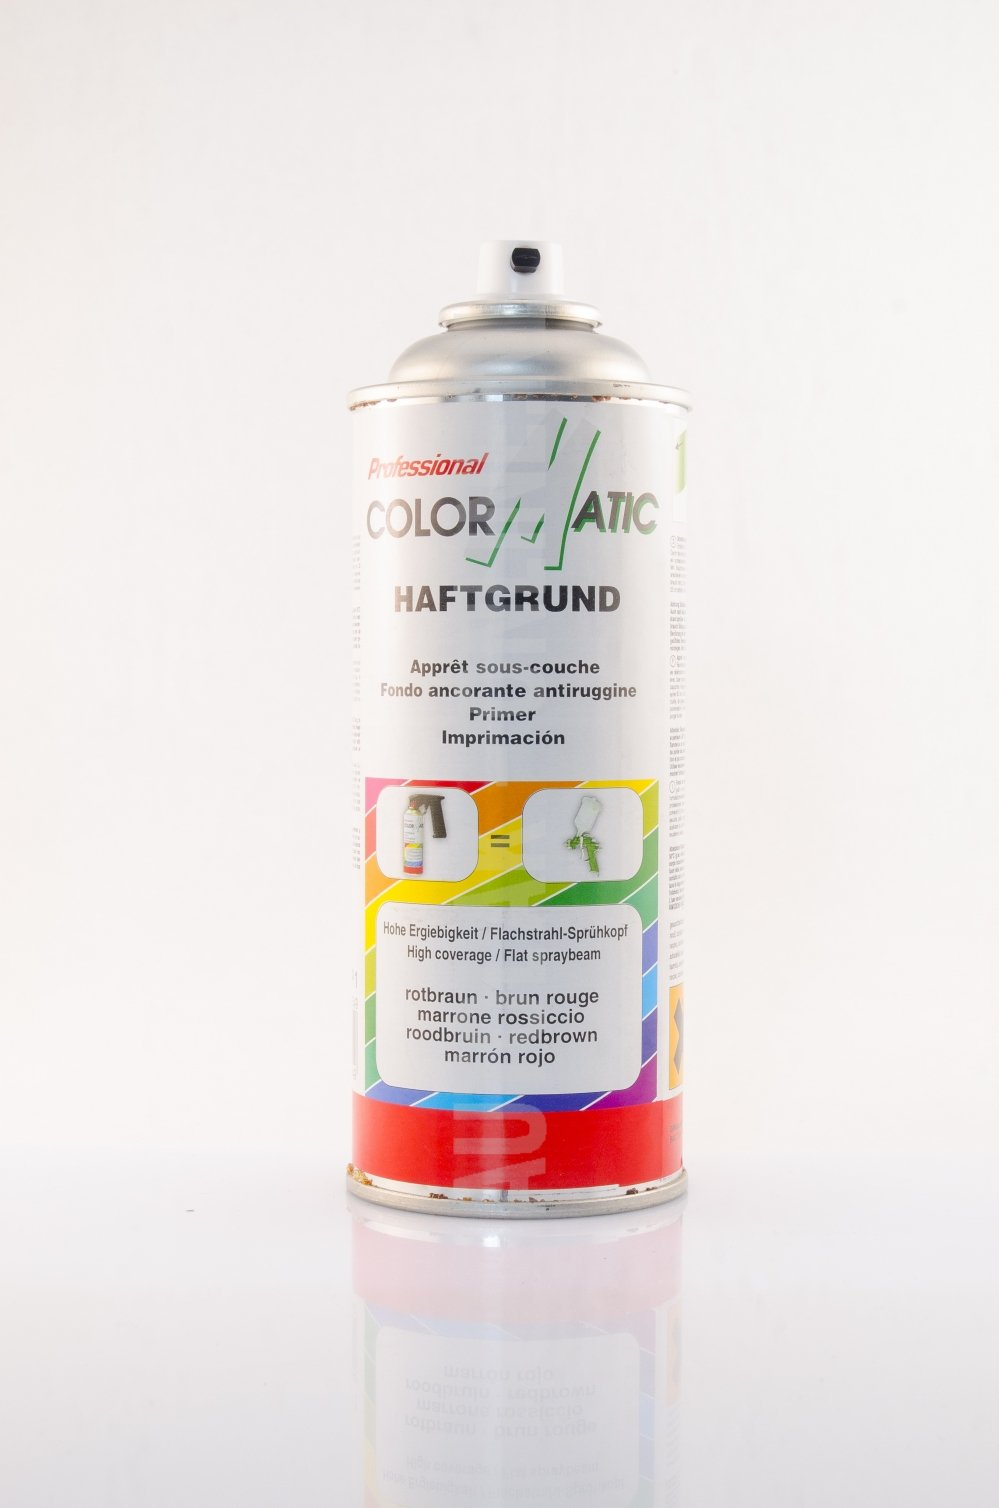 Primers - colormatic-hg8-autolak-online-1